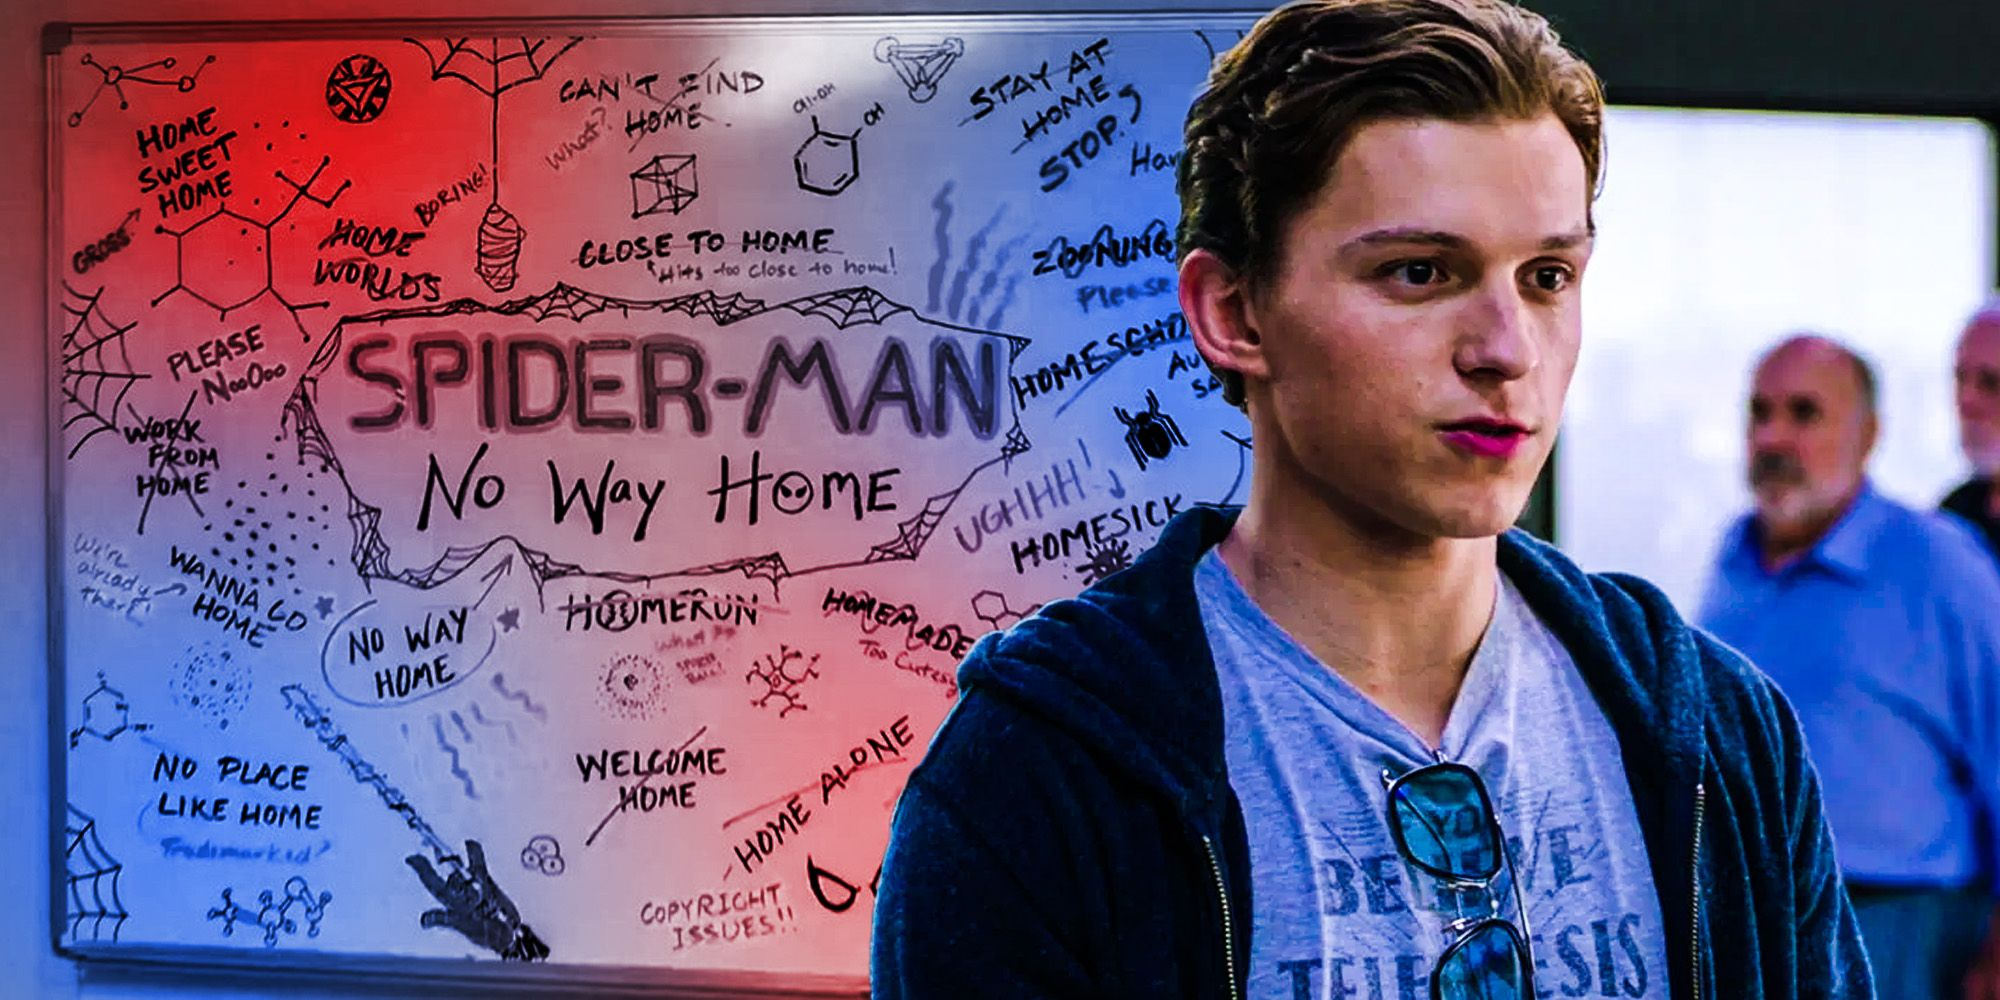 Spider-Man Promo Teases No Way Home Is Peter Parker's Biggest Journey